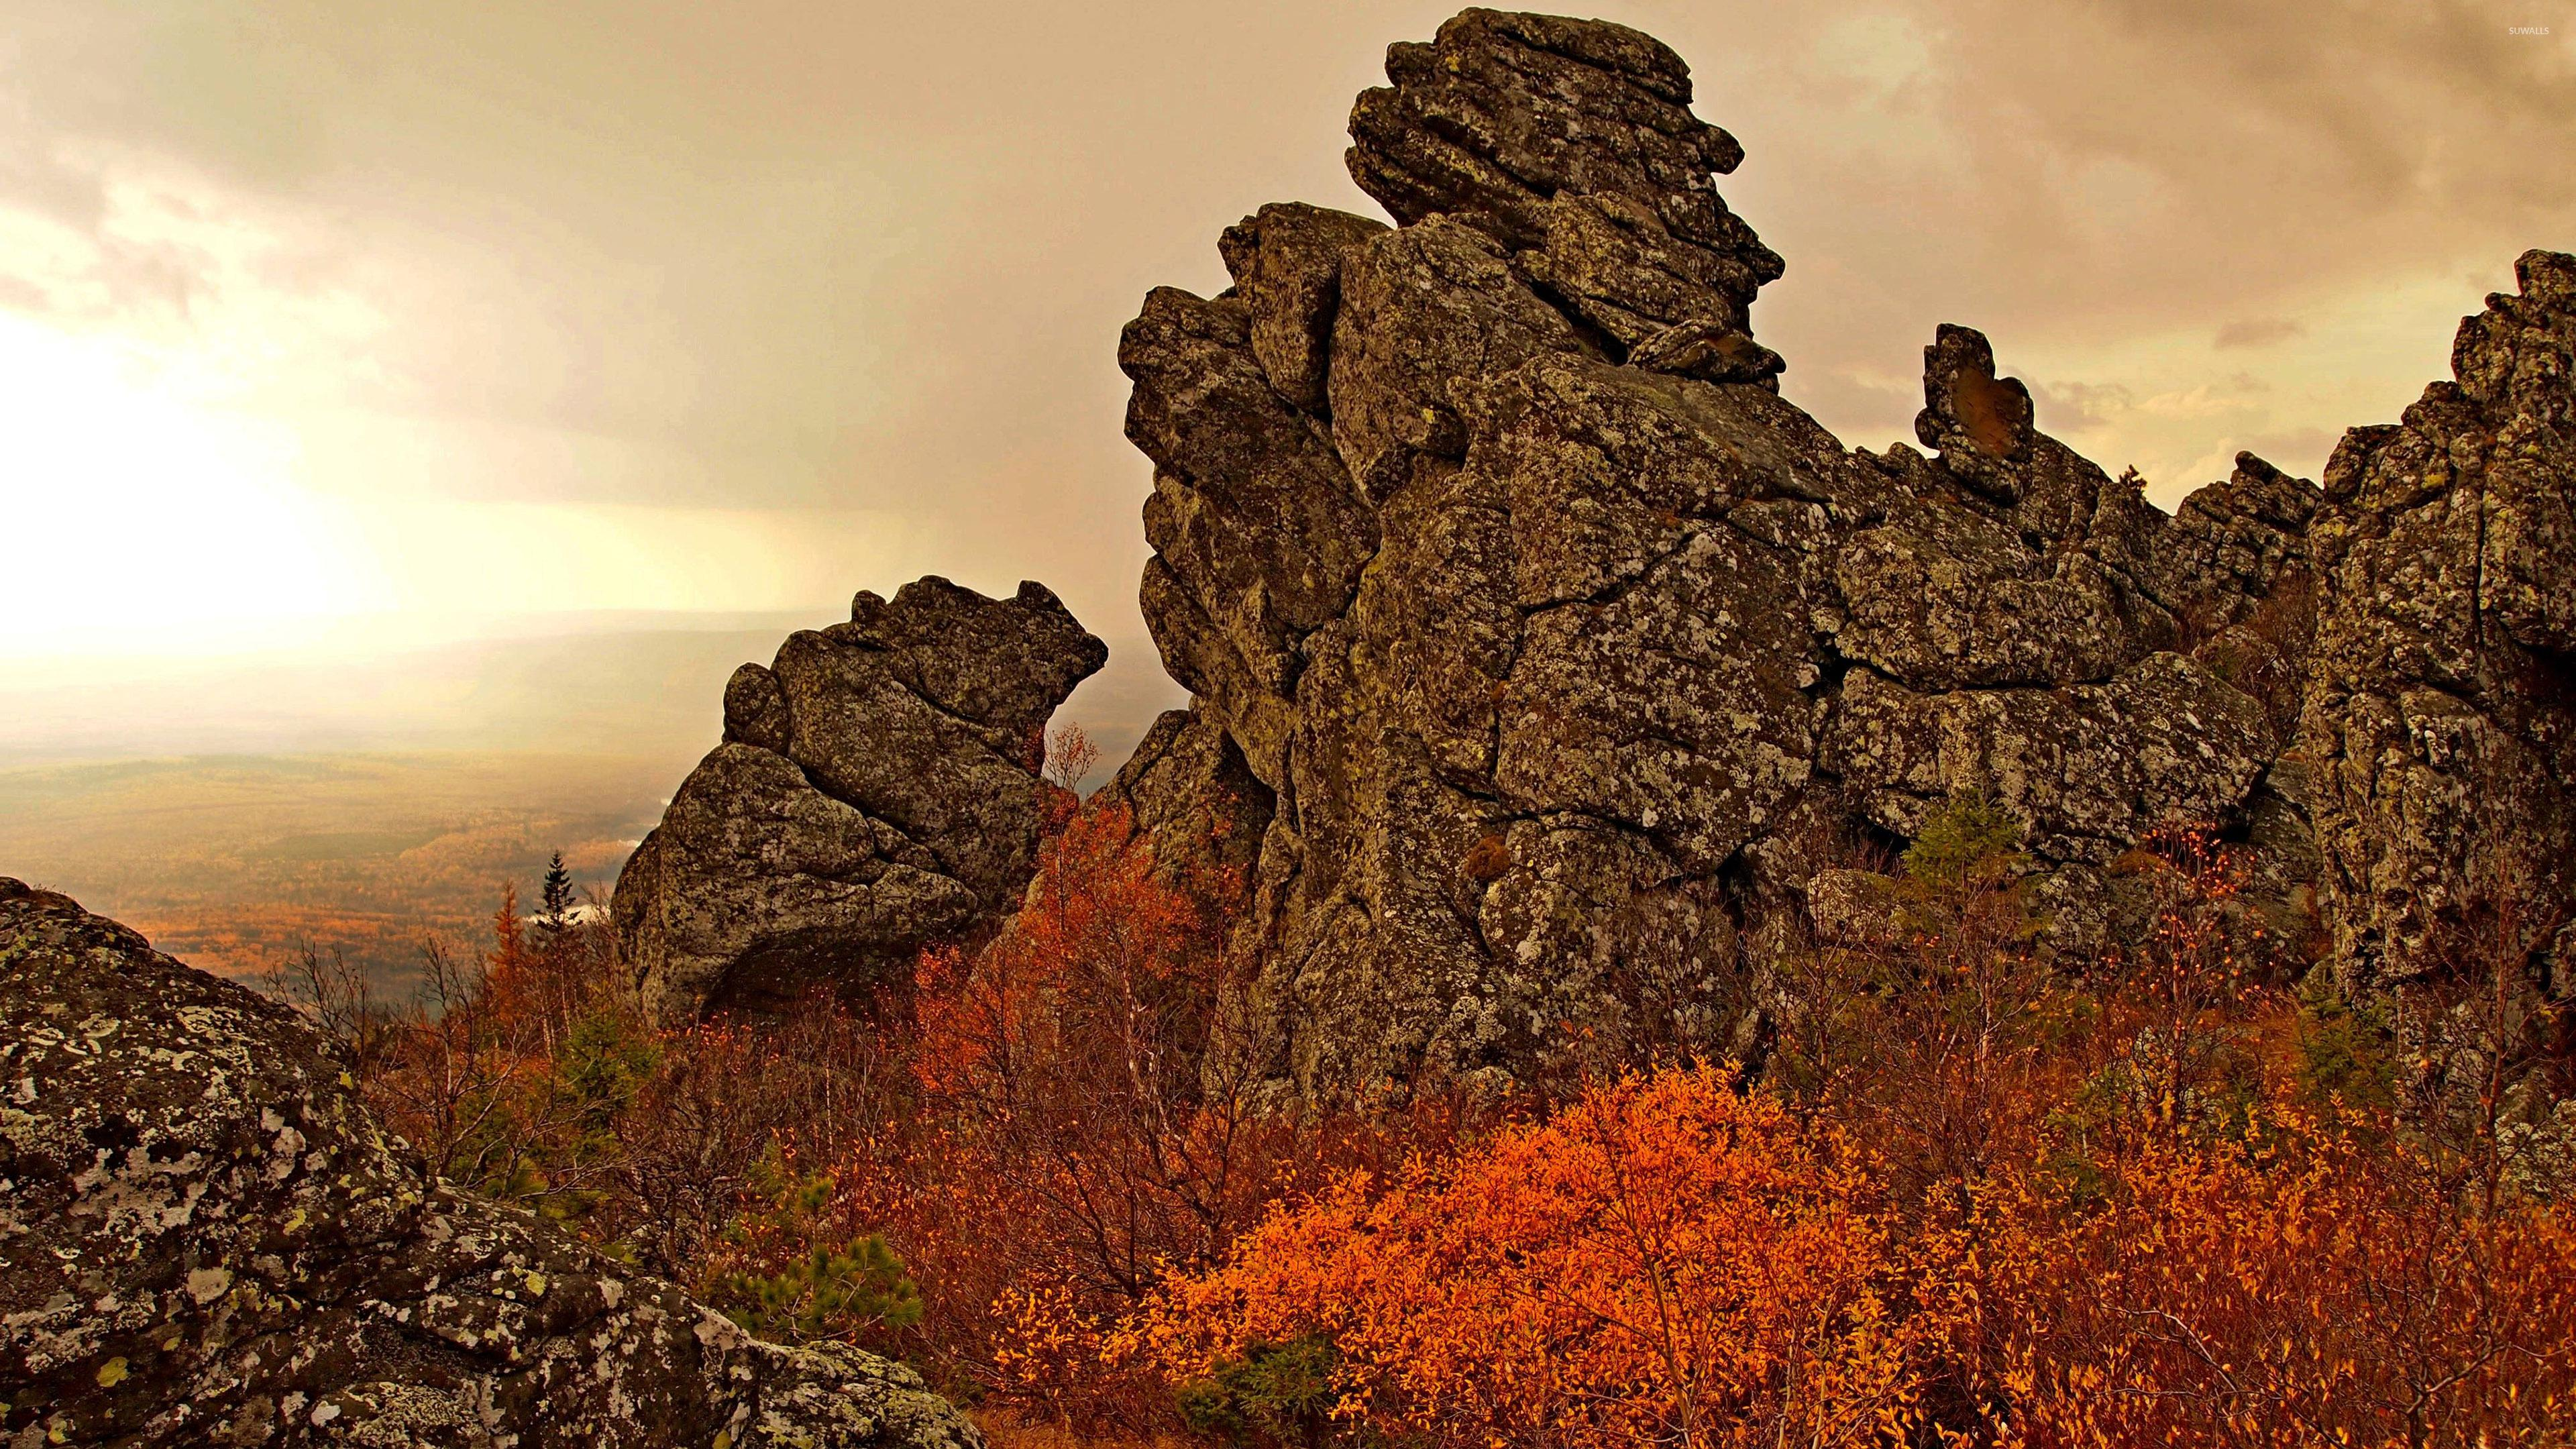 Rusty trees on rocky cliff wallpapers